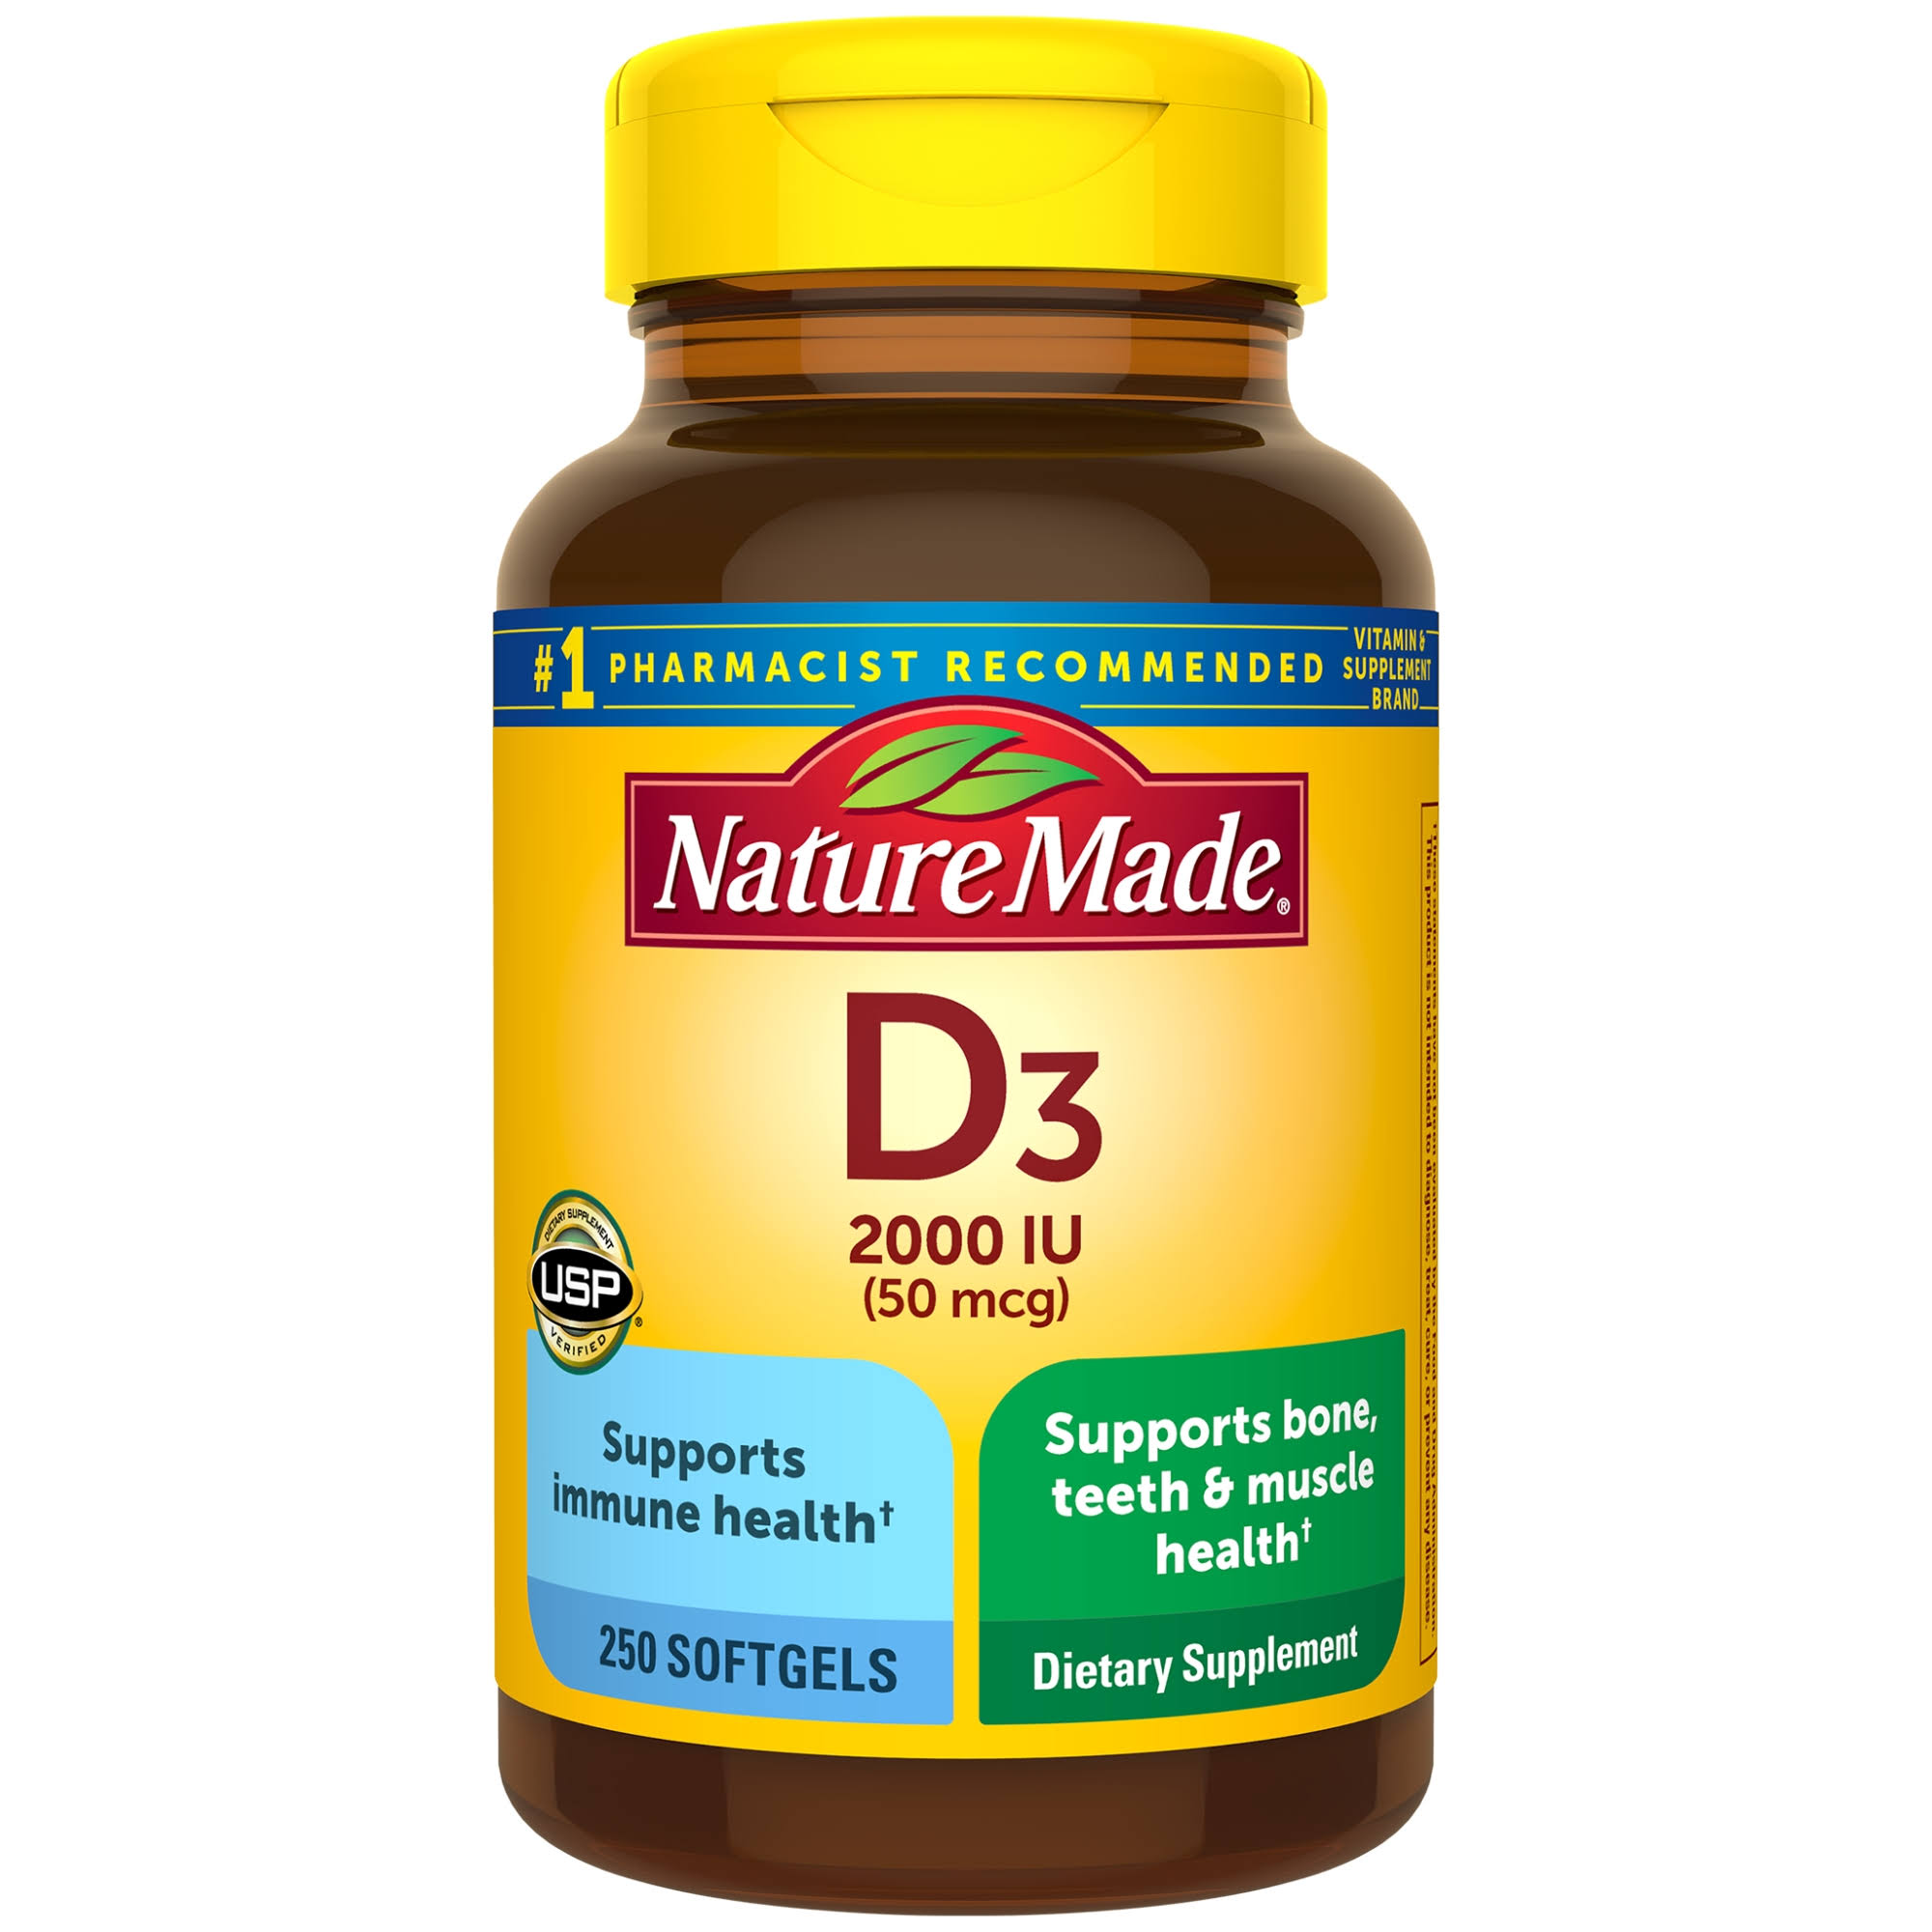 Nature Made Vitamin D3 2000 IU Softgels - x250